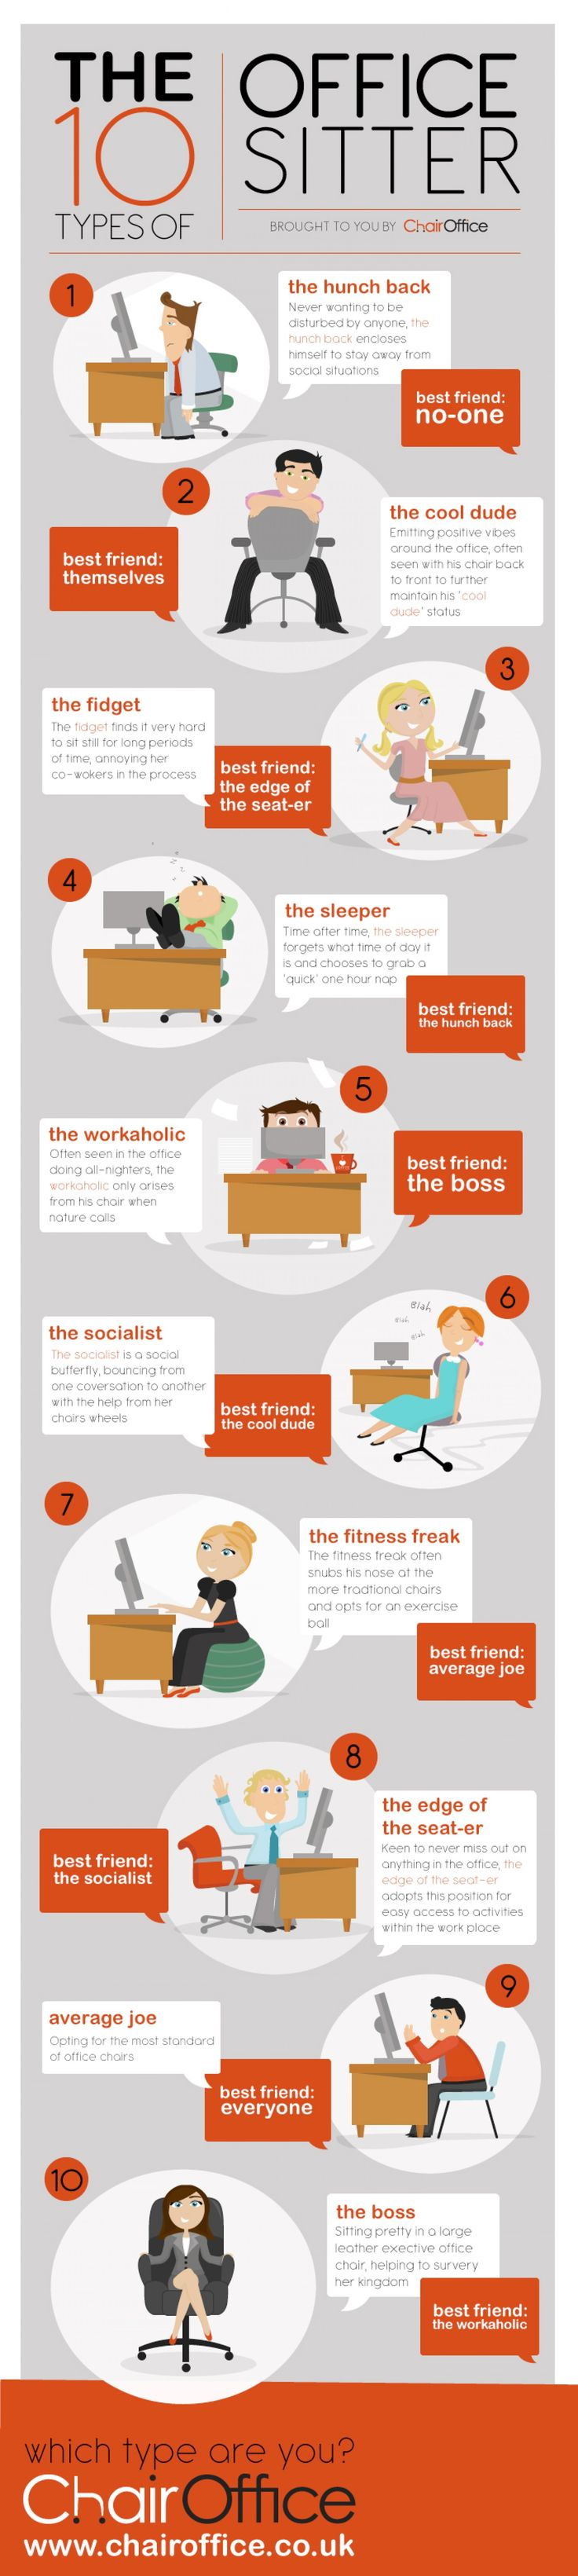 The 10 types Of Office Sitter #Infographic #Office #WorkPlace